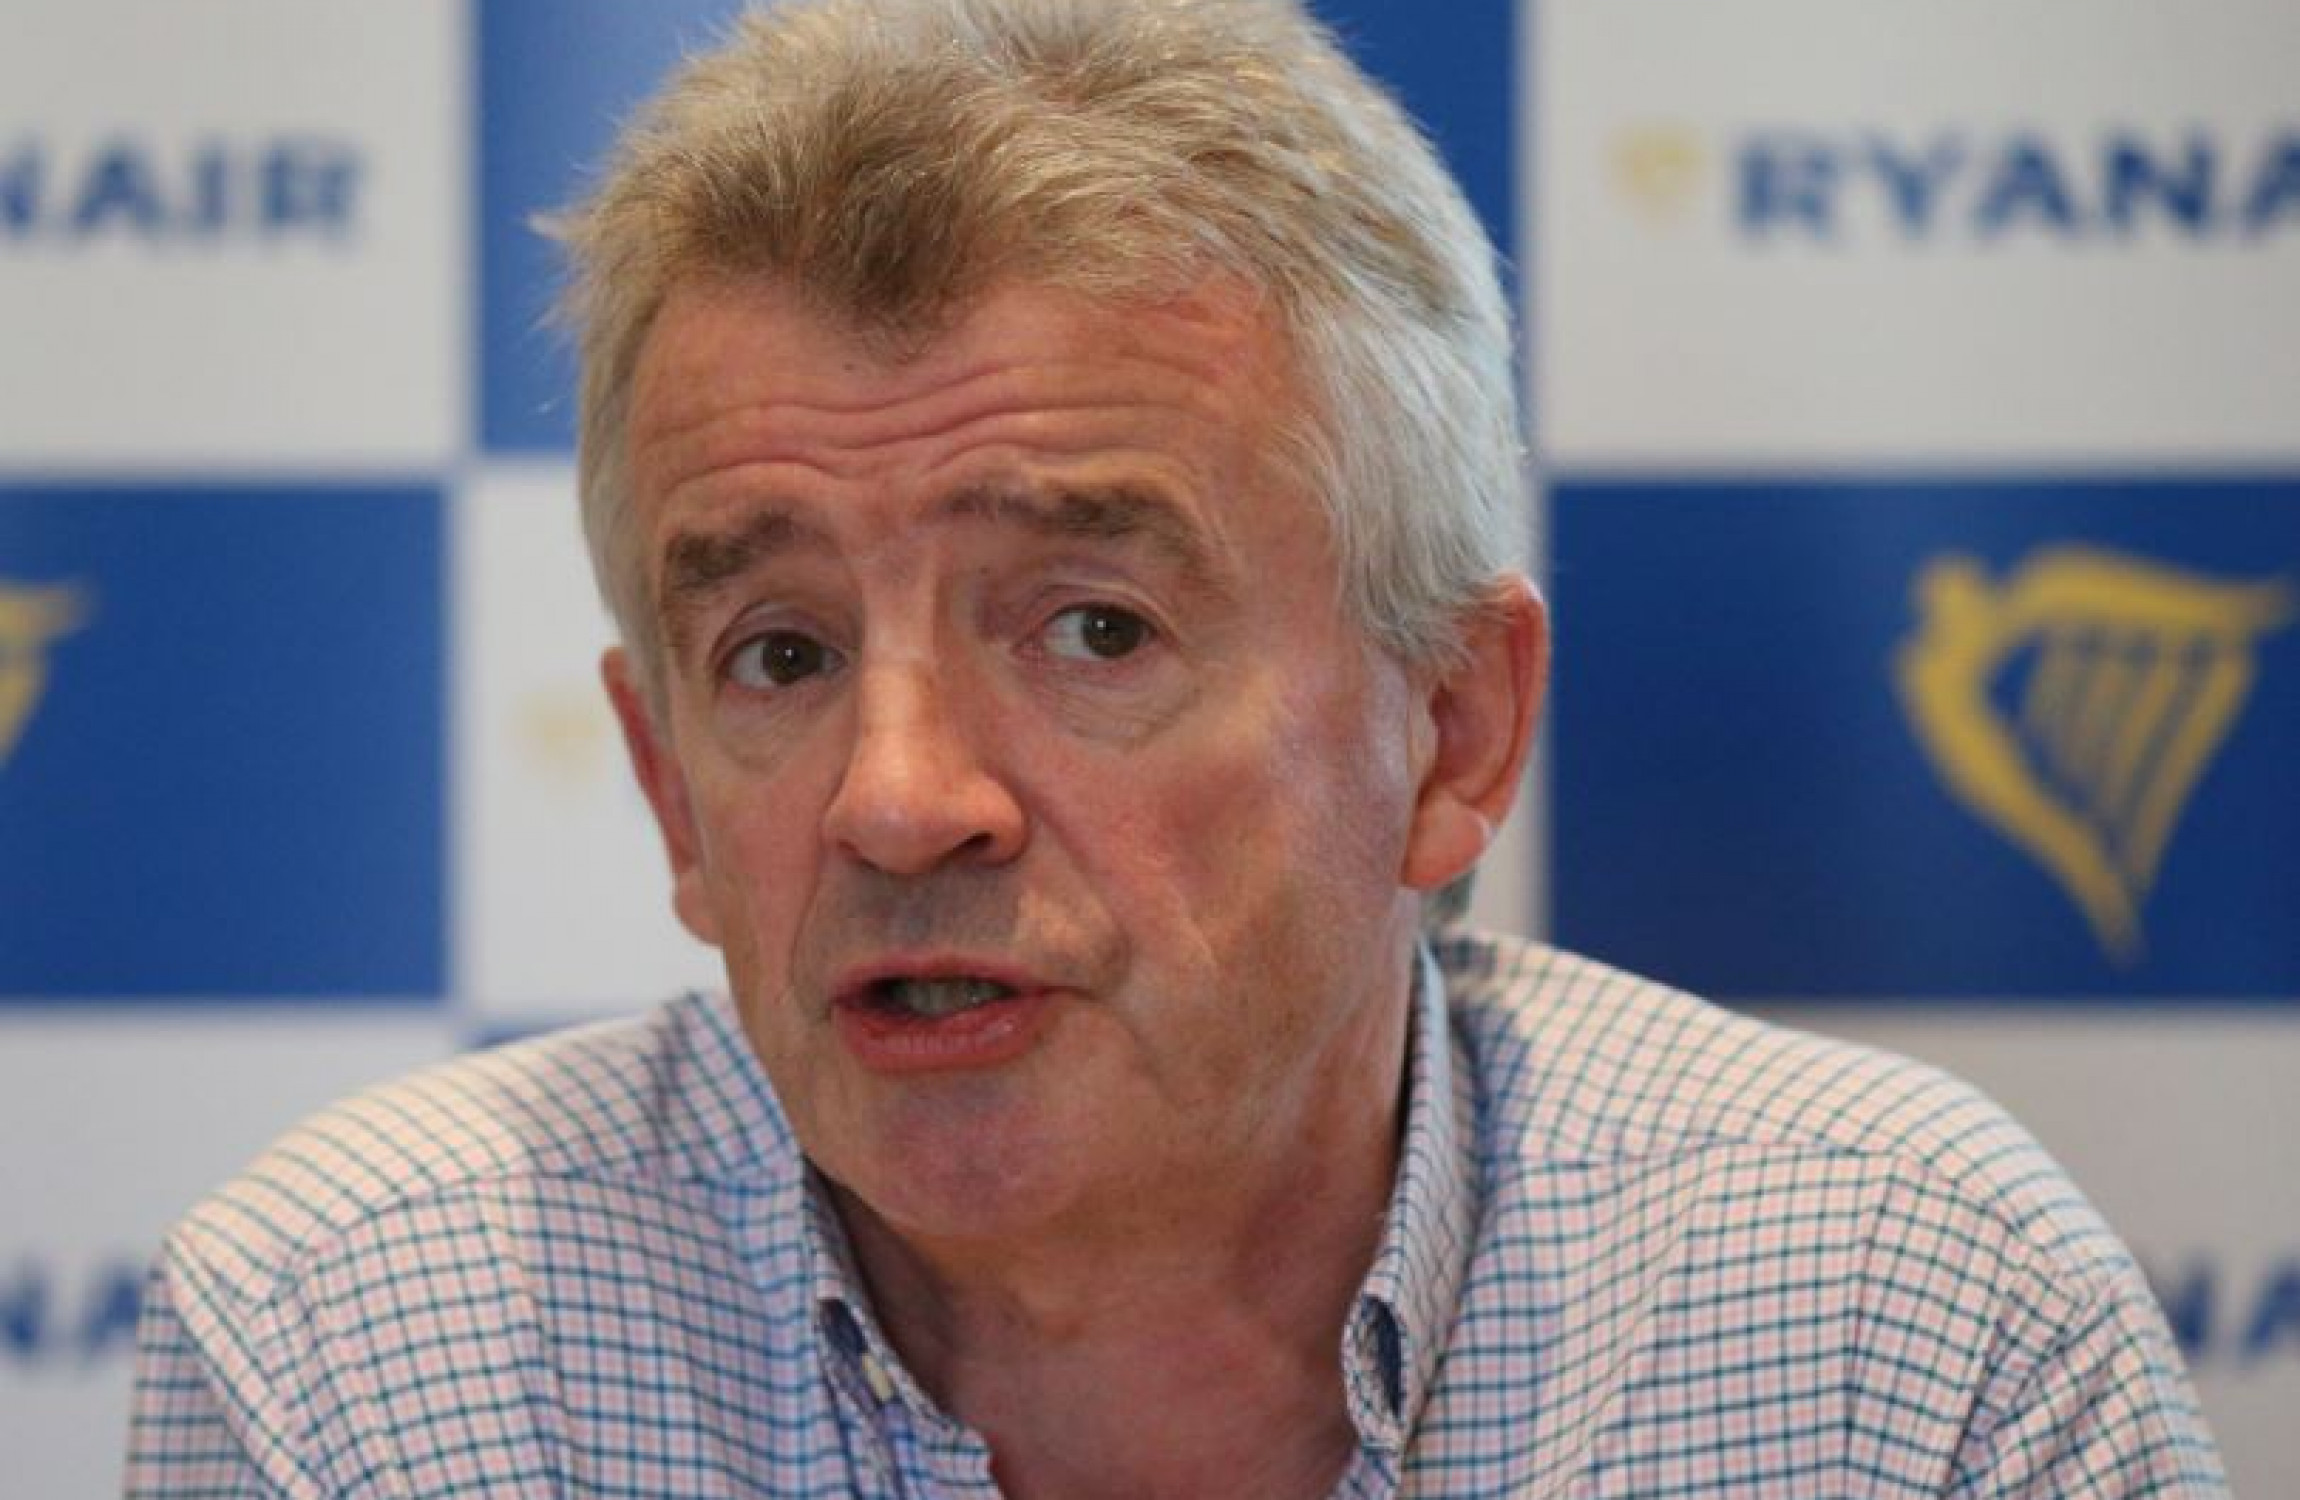 Ryanair Cancels 40 To 50 Flights Per Day